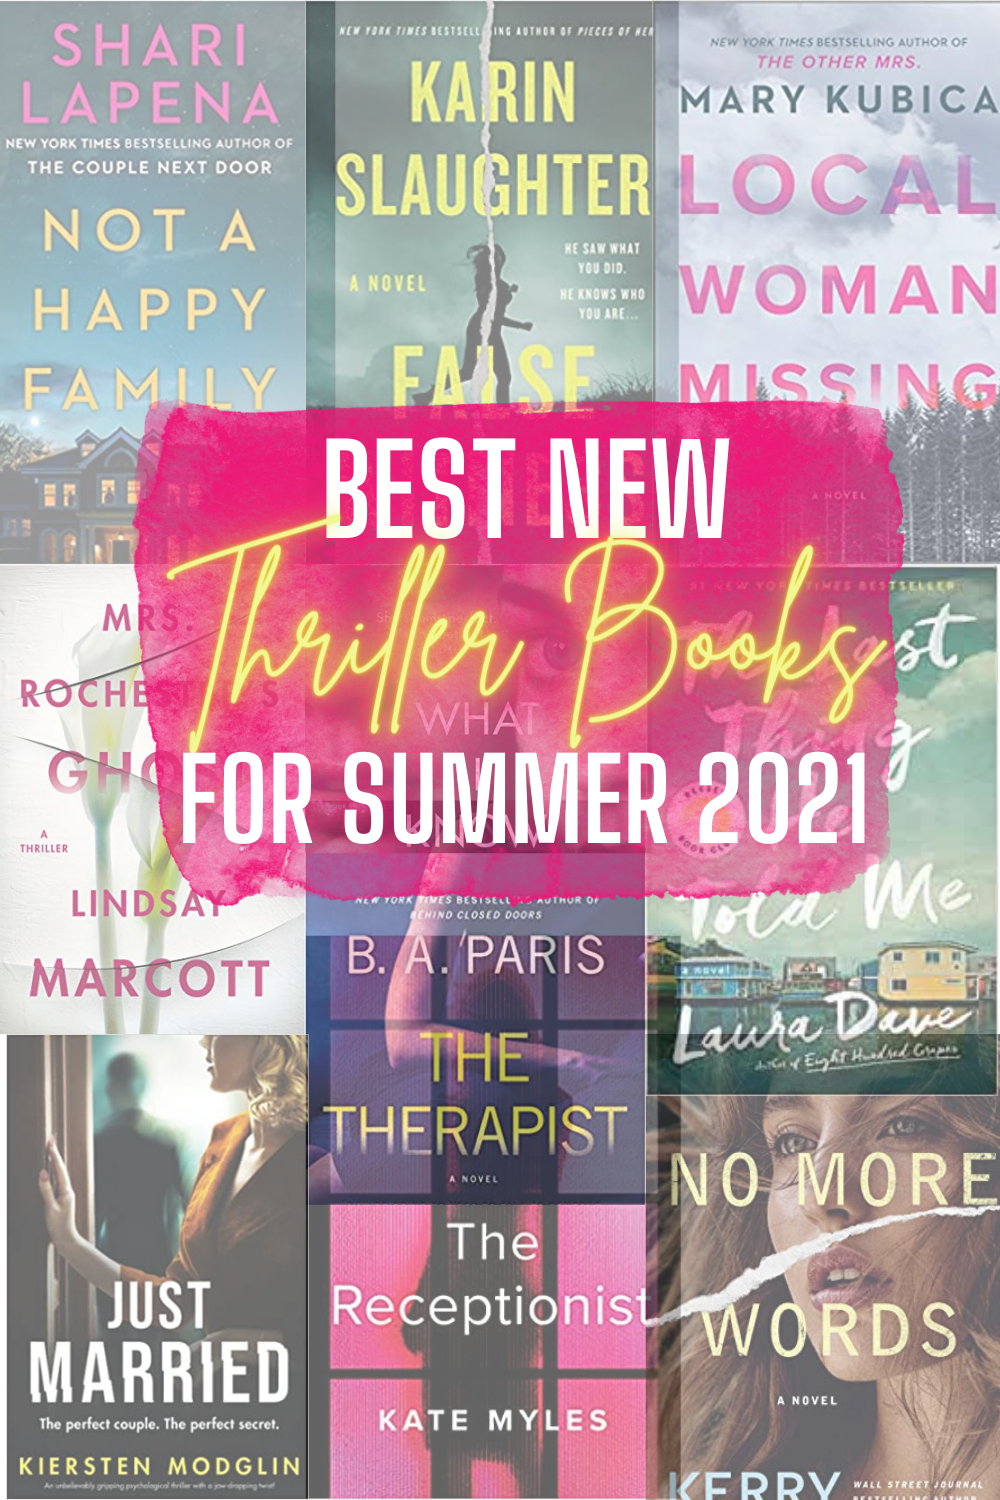 10 New Psychological Thriller Books To Read For Summer 2021